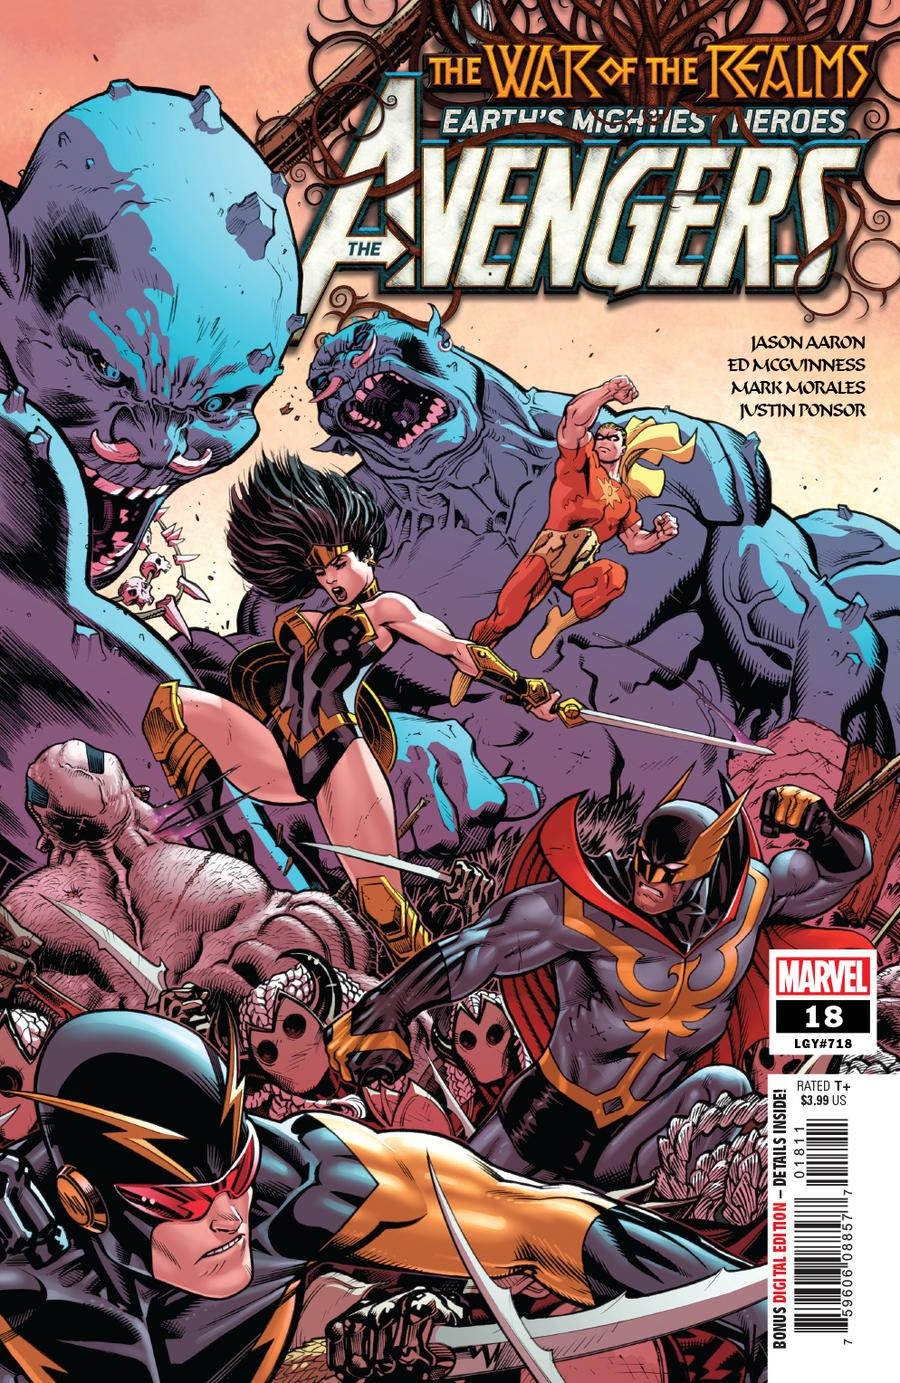 Avengers Vol 7 #18 Cover A Regular Ed McGuinness Cover (War Of The Realms Tie-In)